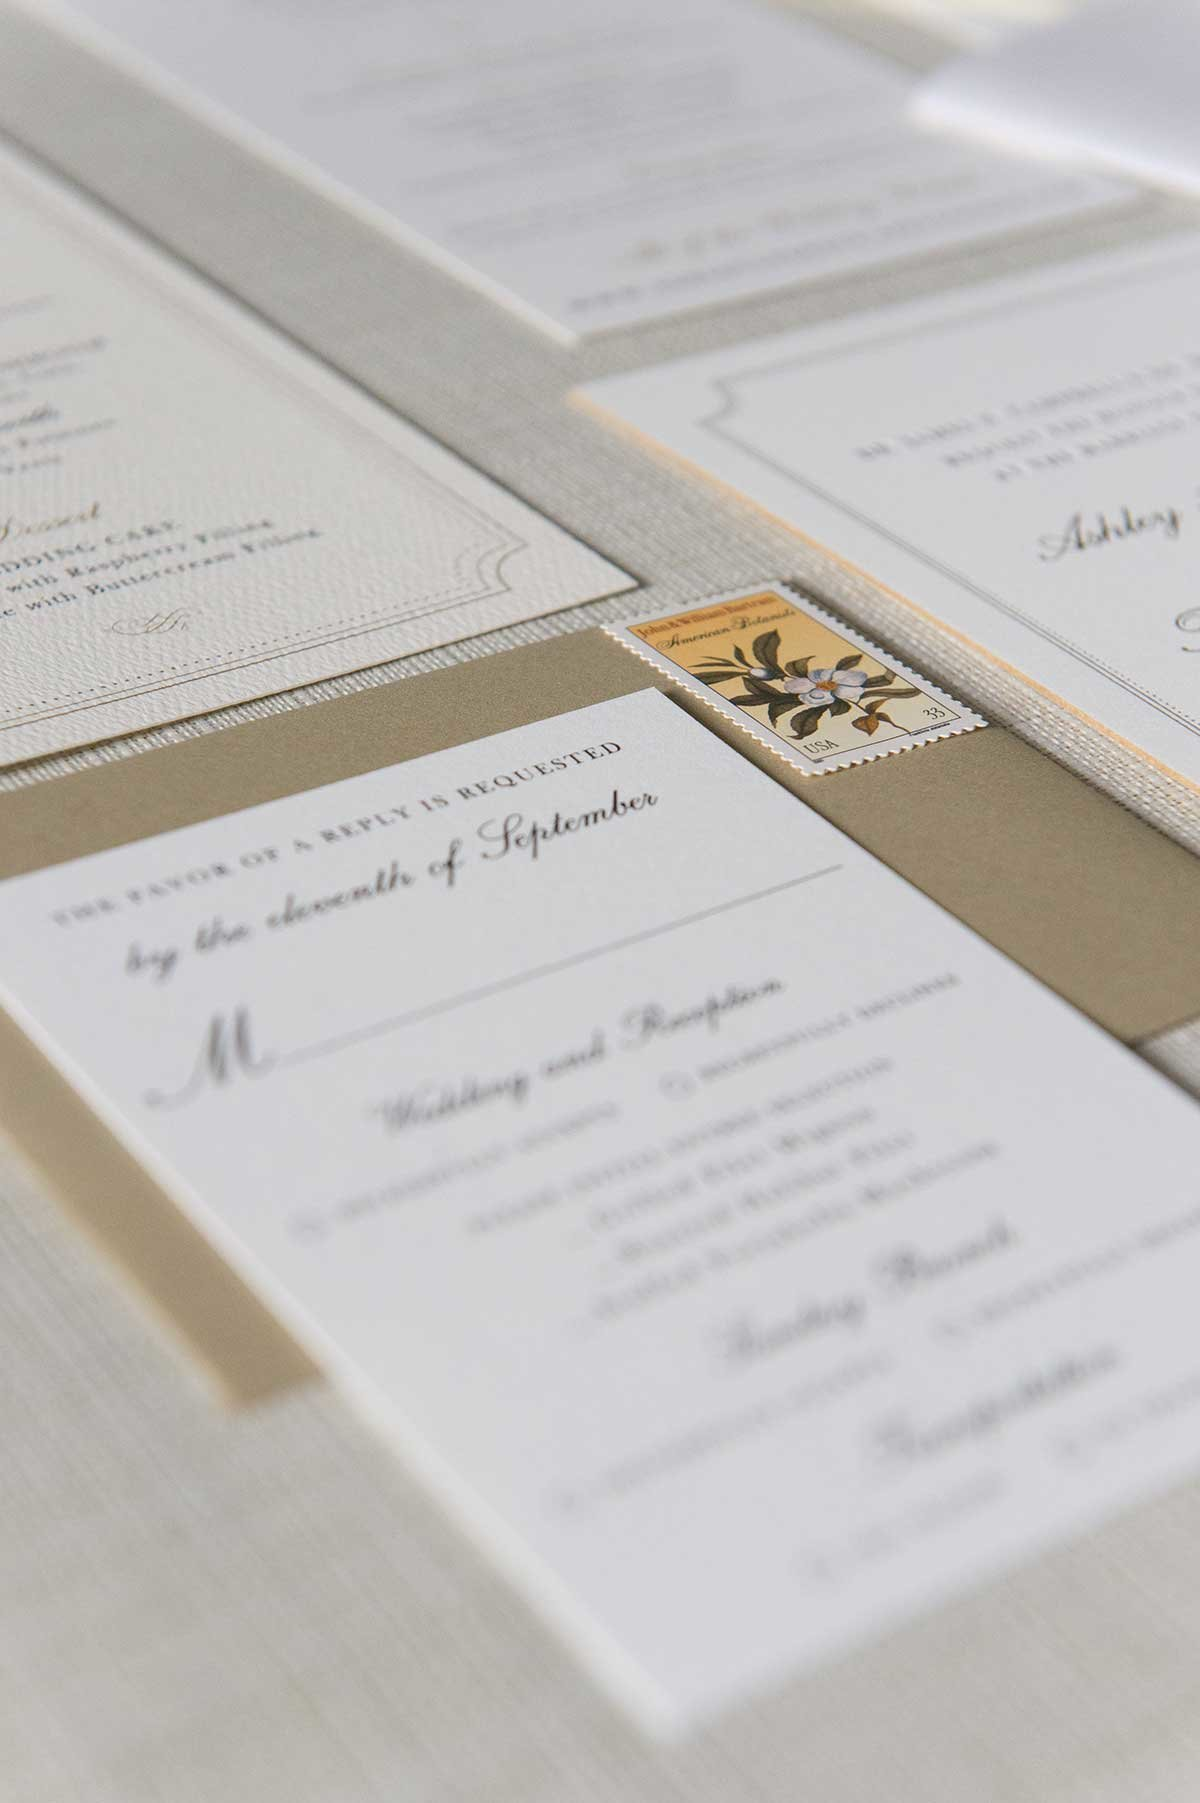 Ashley-DetailCard-Letterpress-WaxSeal-ElkridgeClub